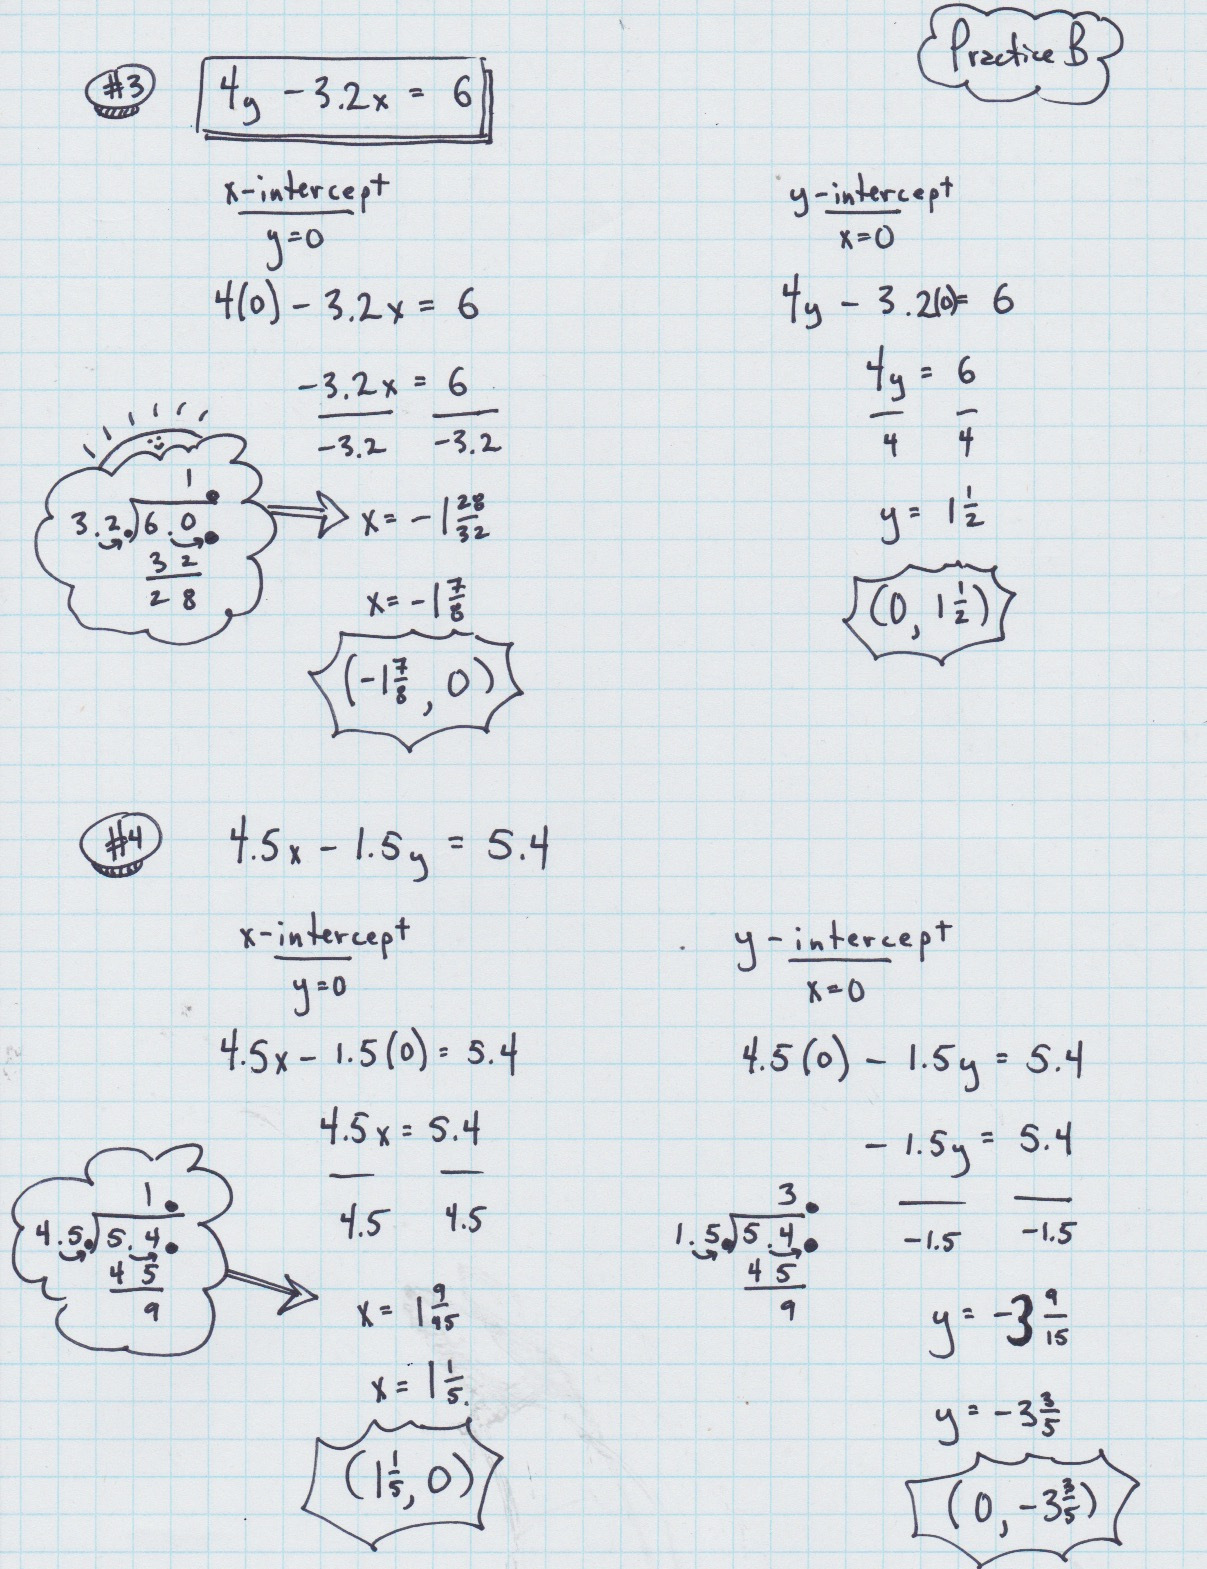 Lesson 7 8 Practice B Multiplying Polynomials Answers